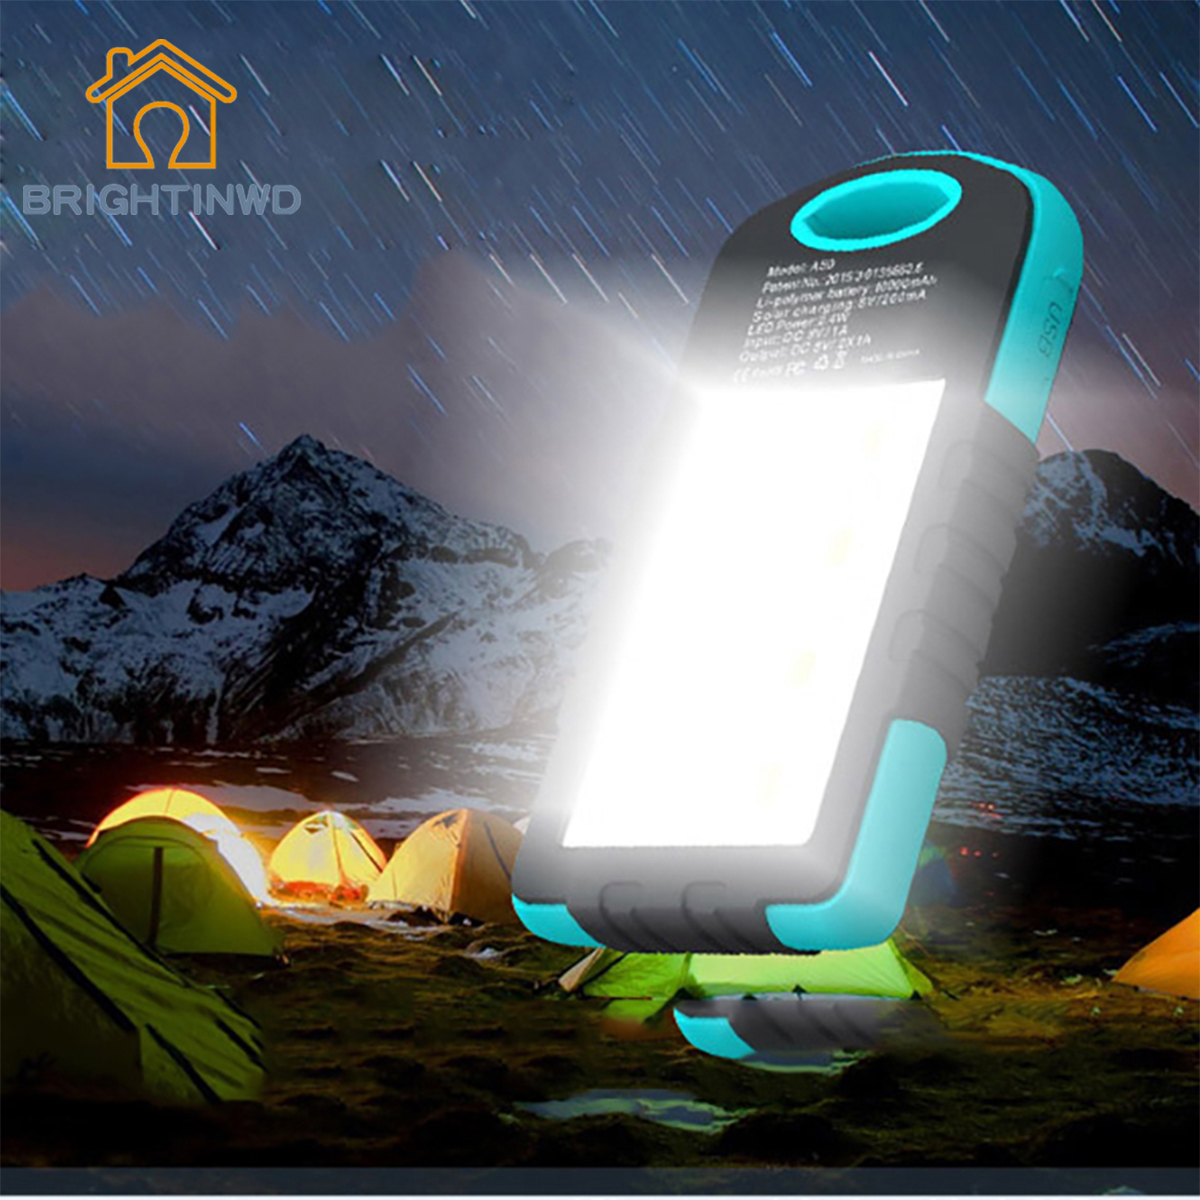 LED Solar Power Camping Lamp Outdoor Flashlight 3000mAh Bank For Phone Portable Lanterns BRIGHTINWD